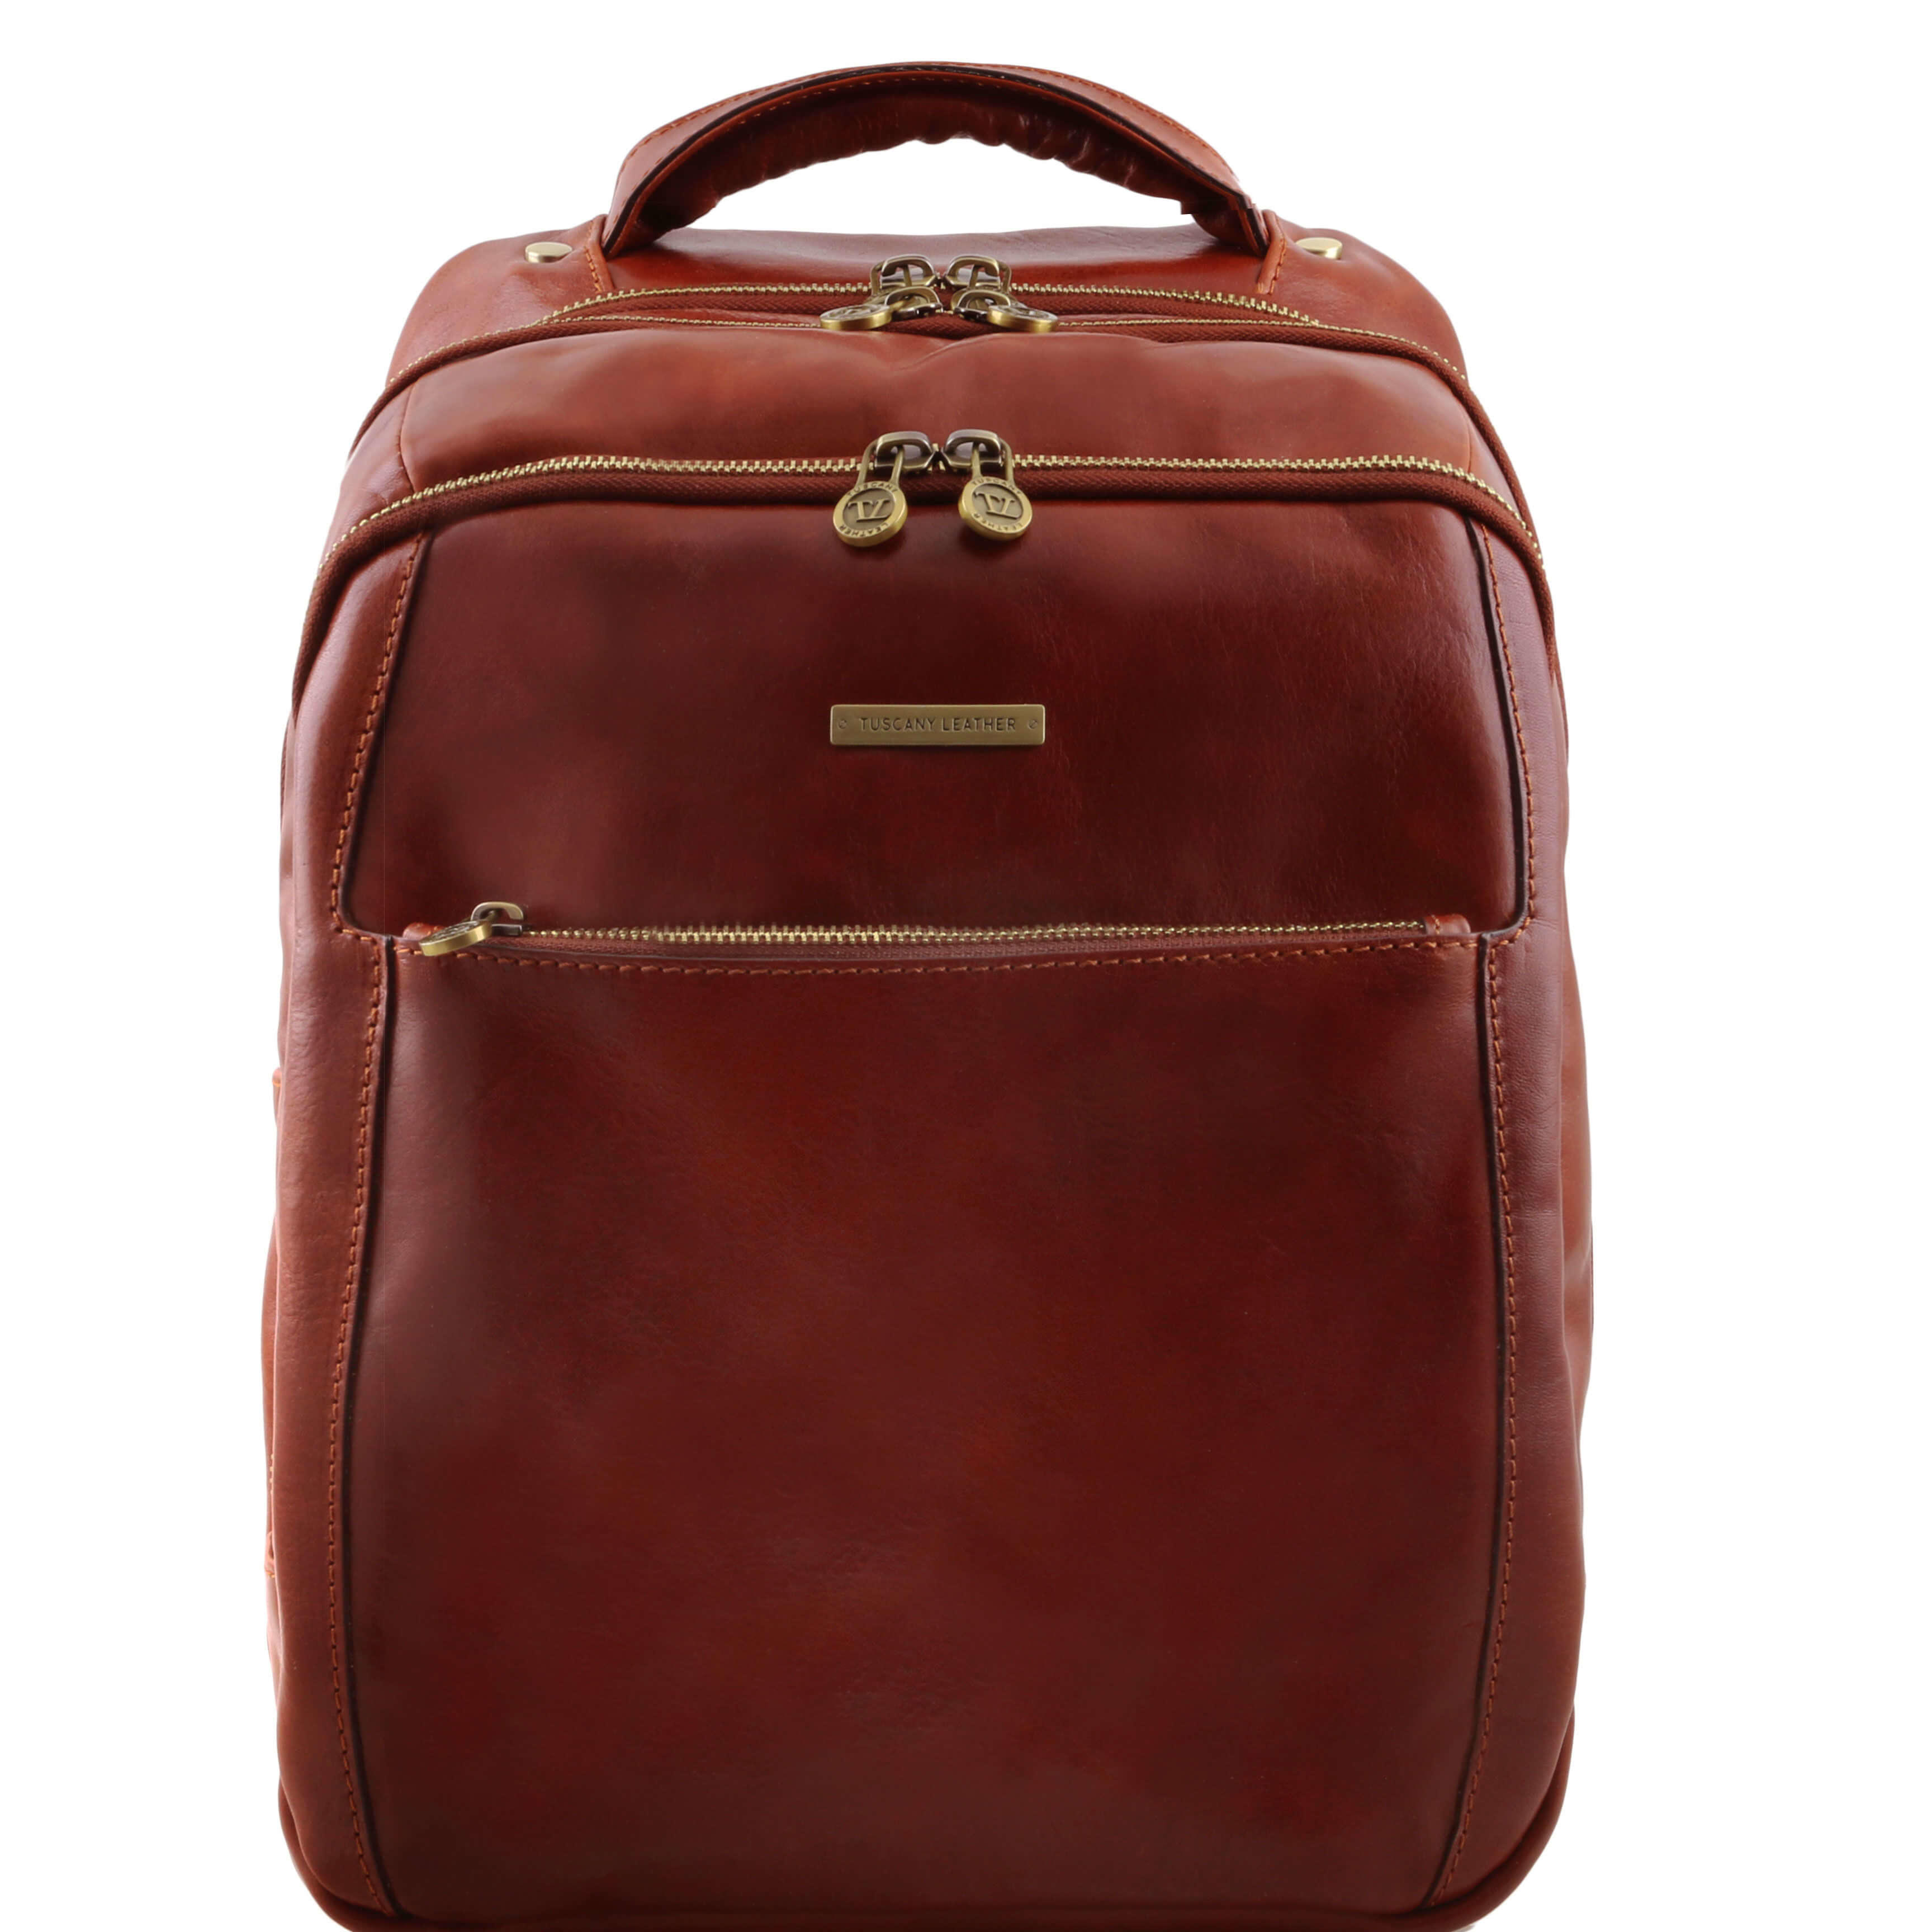 TL141402 Phuket Leather Backpack-Rucksack-Holdall-Bag 3 Compartments in Brown